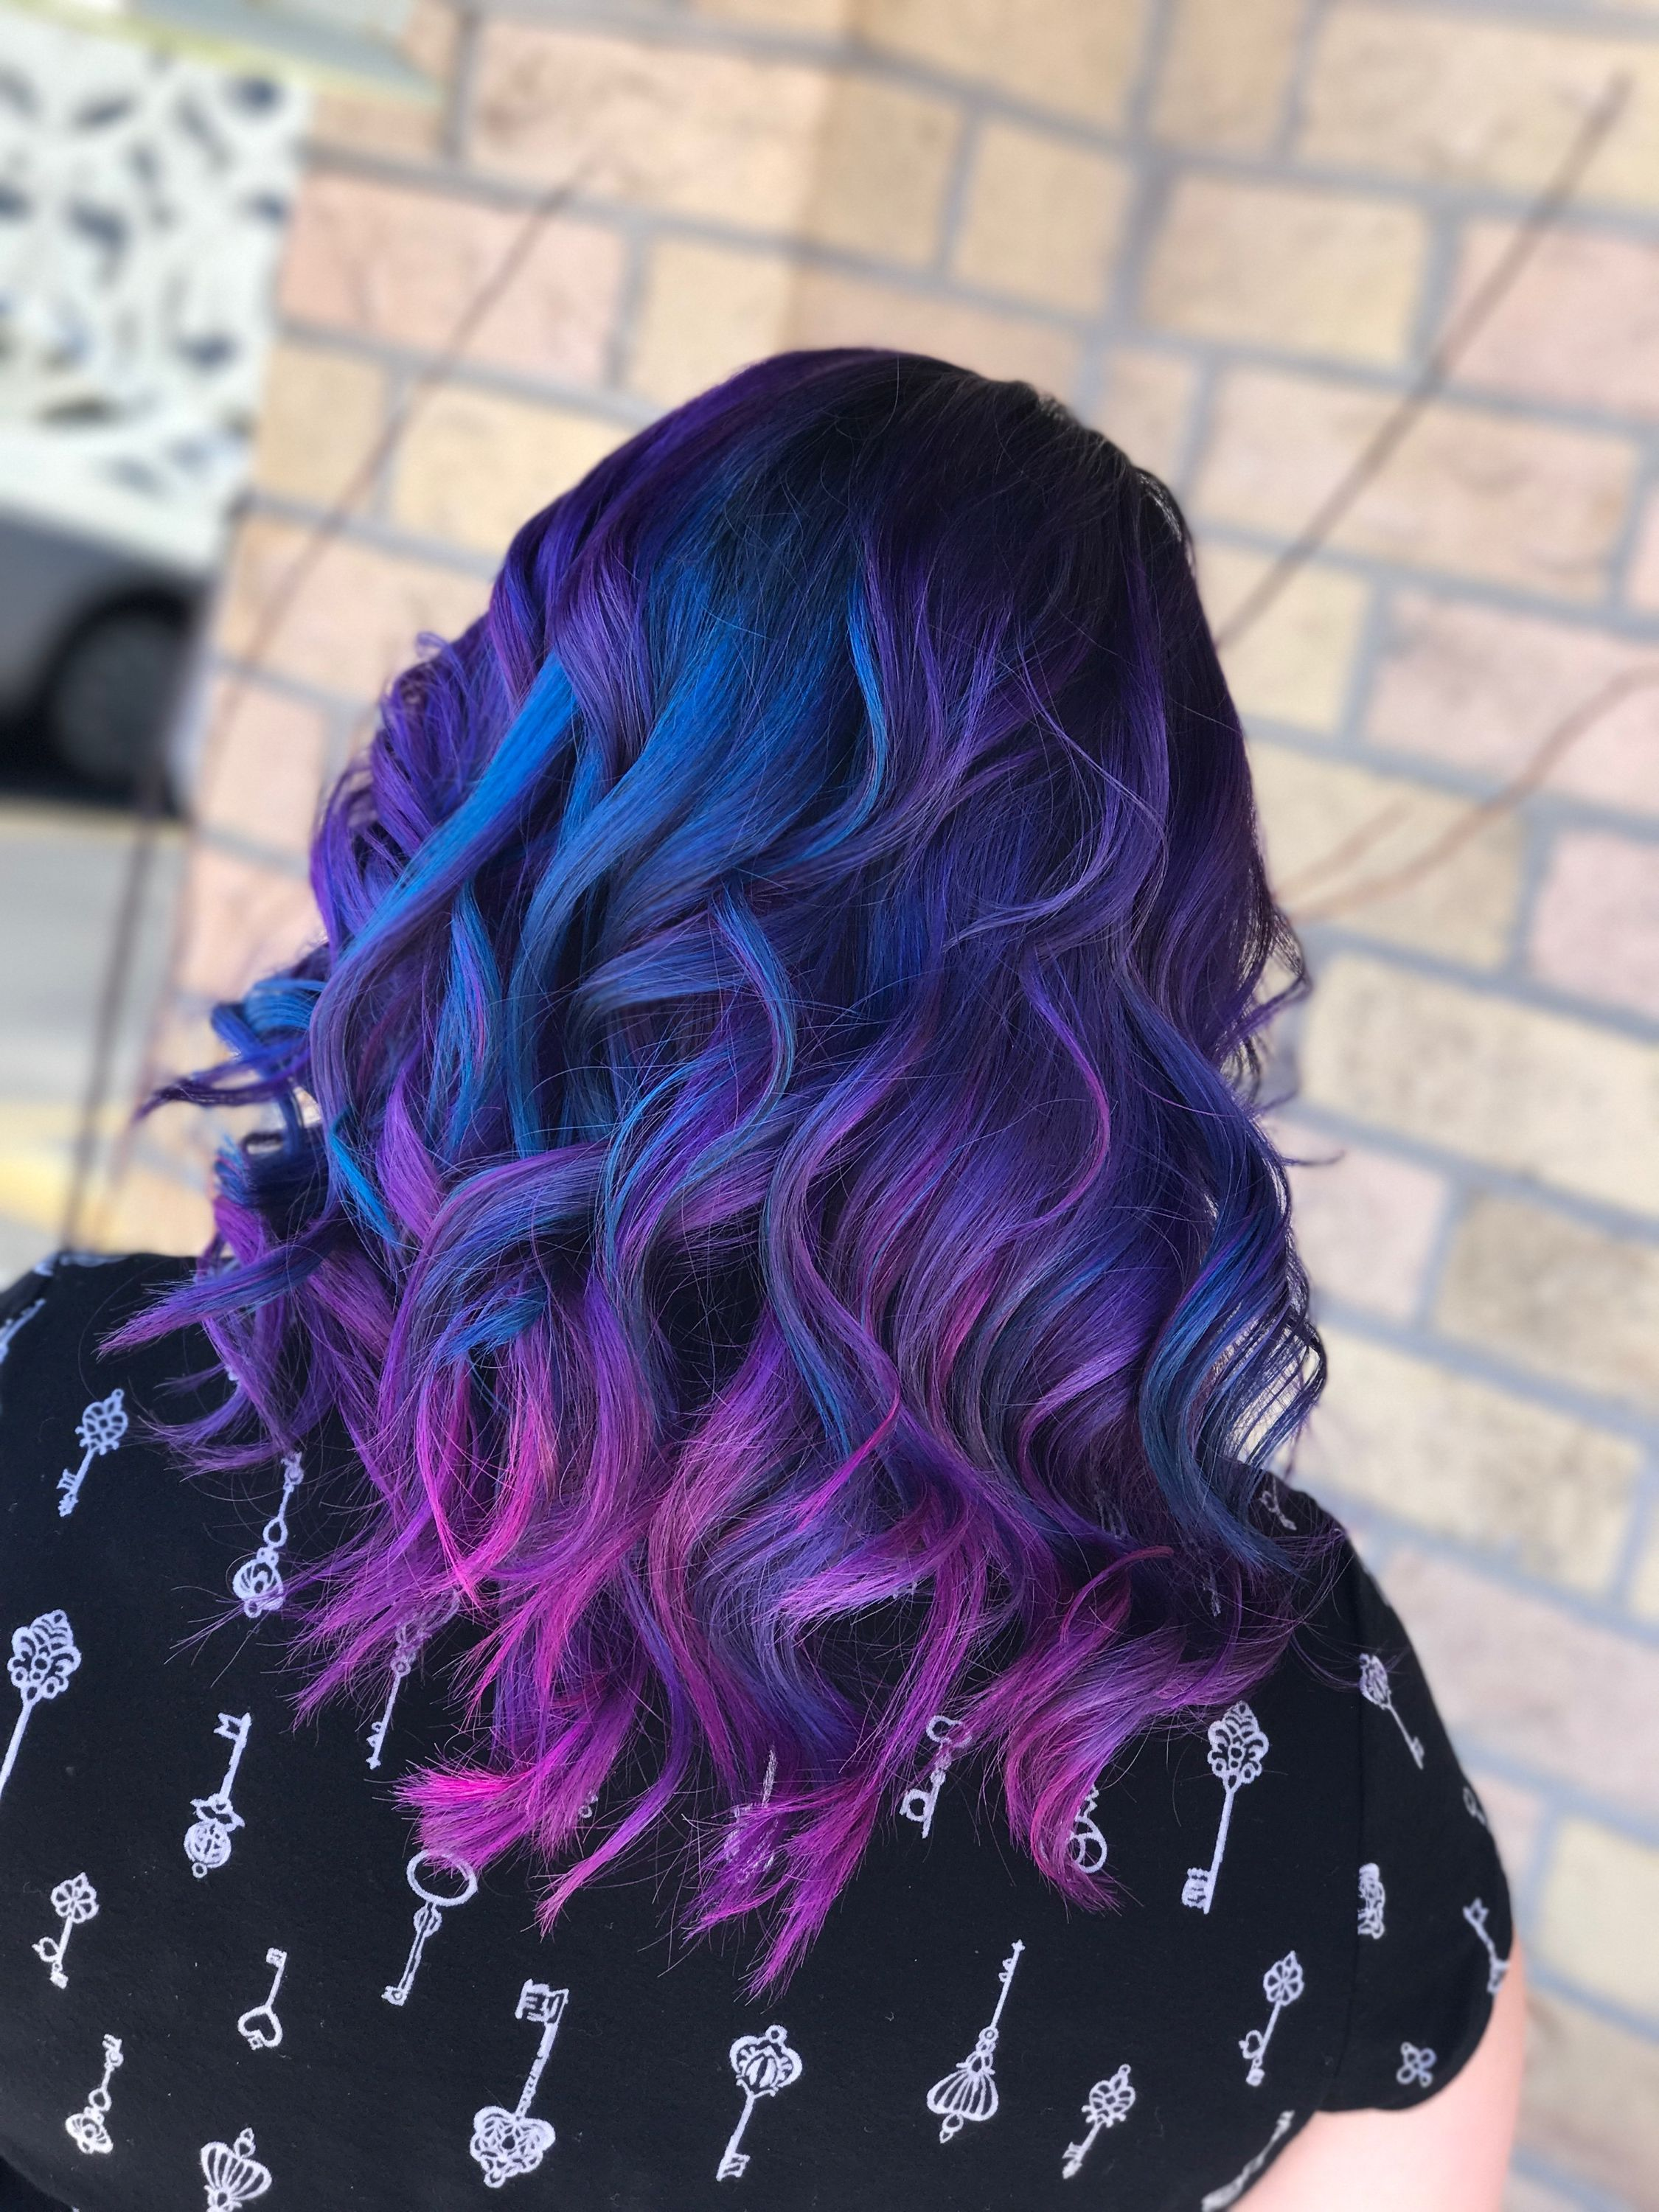 My Galaxy Hair Essense Hair London Ontario